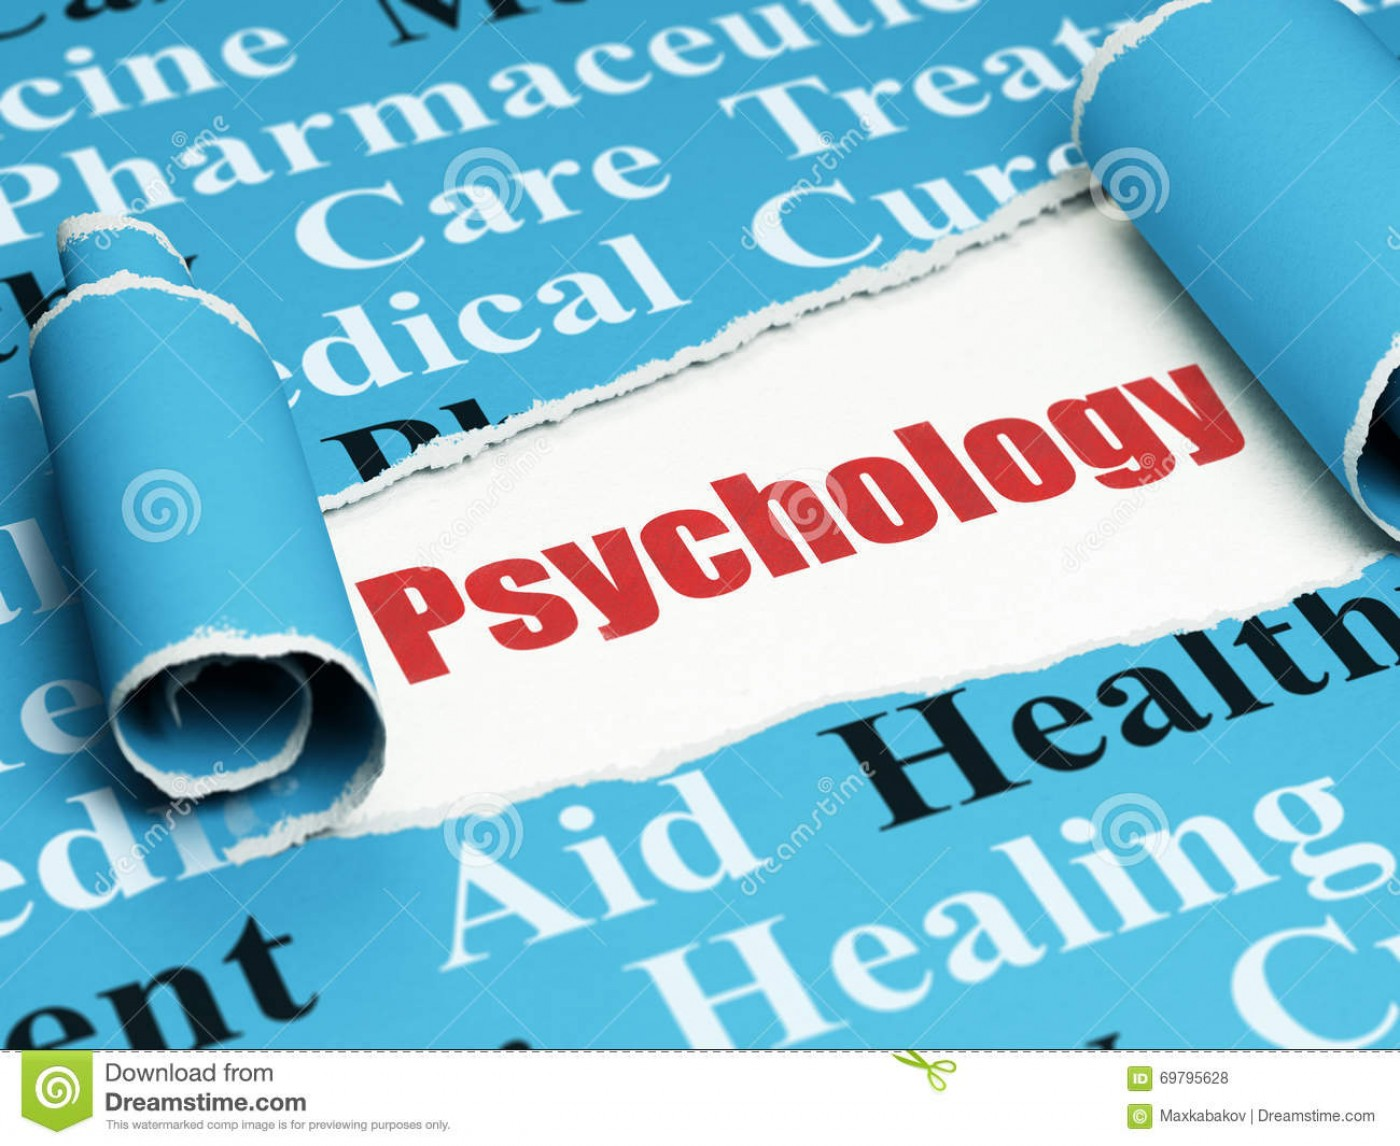 010 Research Paper Psychology On Dreams Health Concept Red Text Under Piece Torn Curled Blue Tag Cloud Rendering Singular Articles 1400